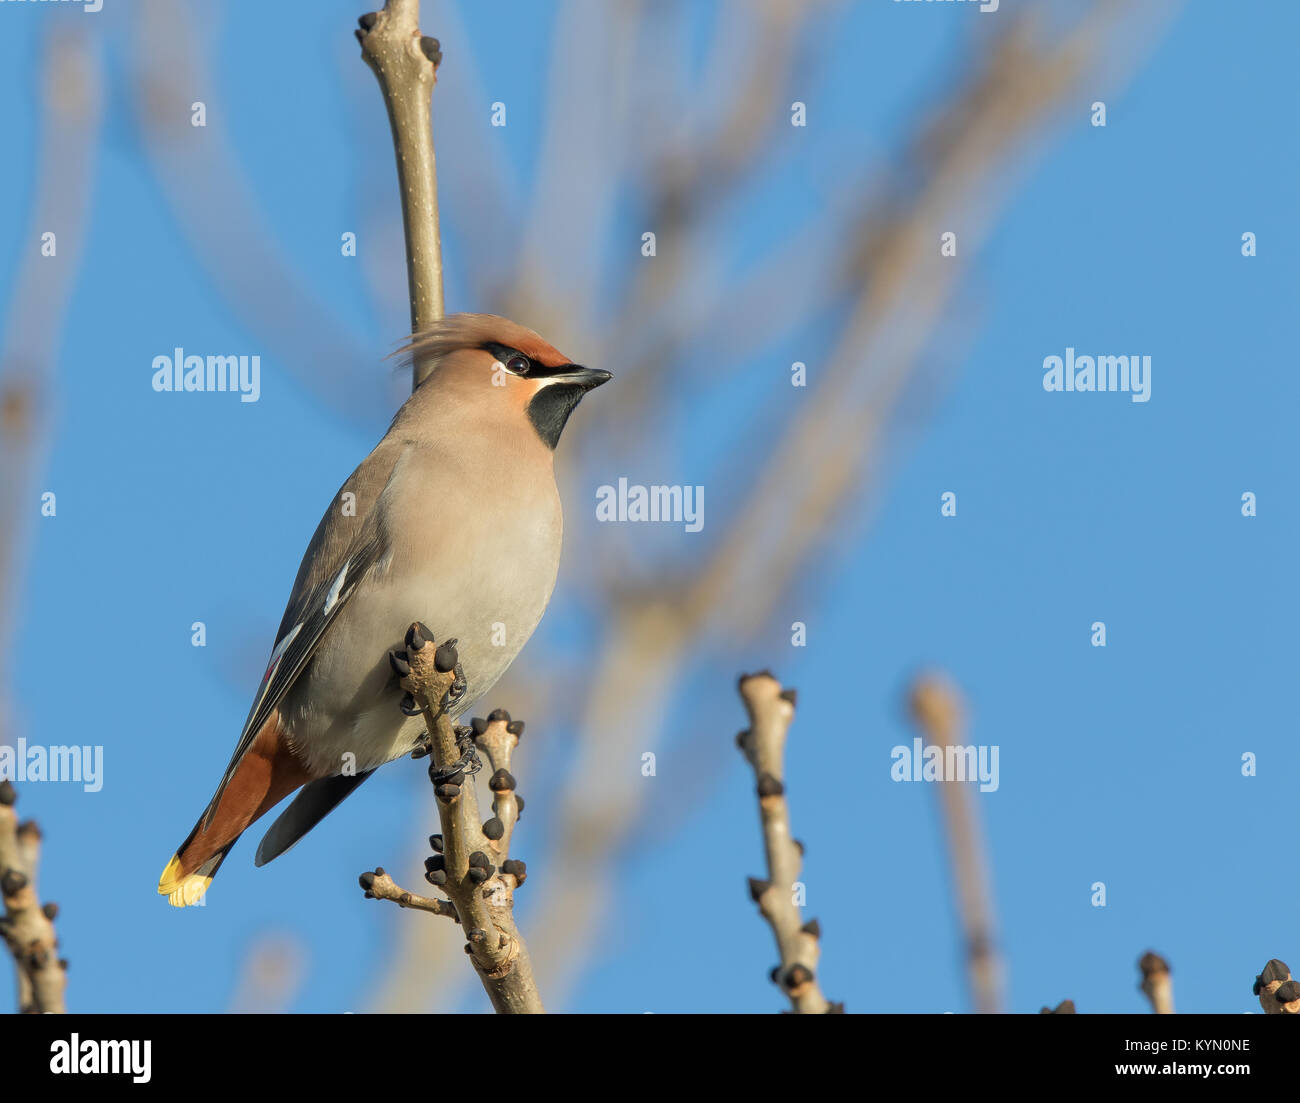 Very detailed, low-angle close up of one adult waxwing (Bombycilla garrulus) perched high in a leafless tree in - Stock Image